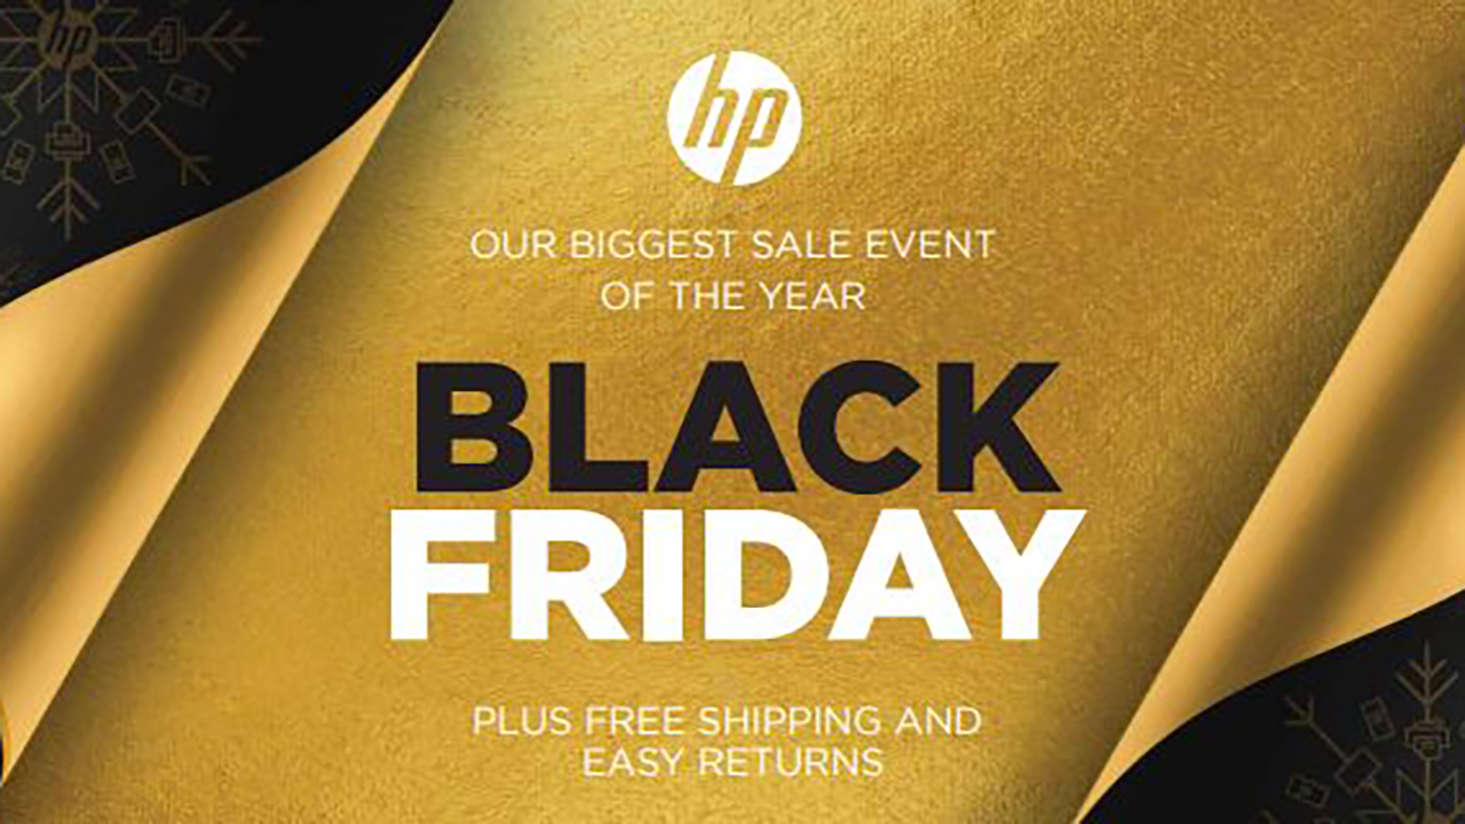 HP Highlights Serious Laptop, Desktop, and Monitor Bargains for Black Friday